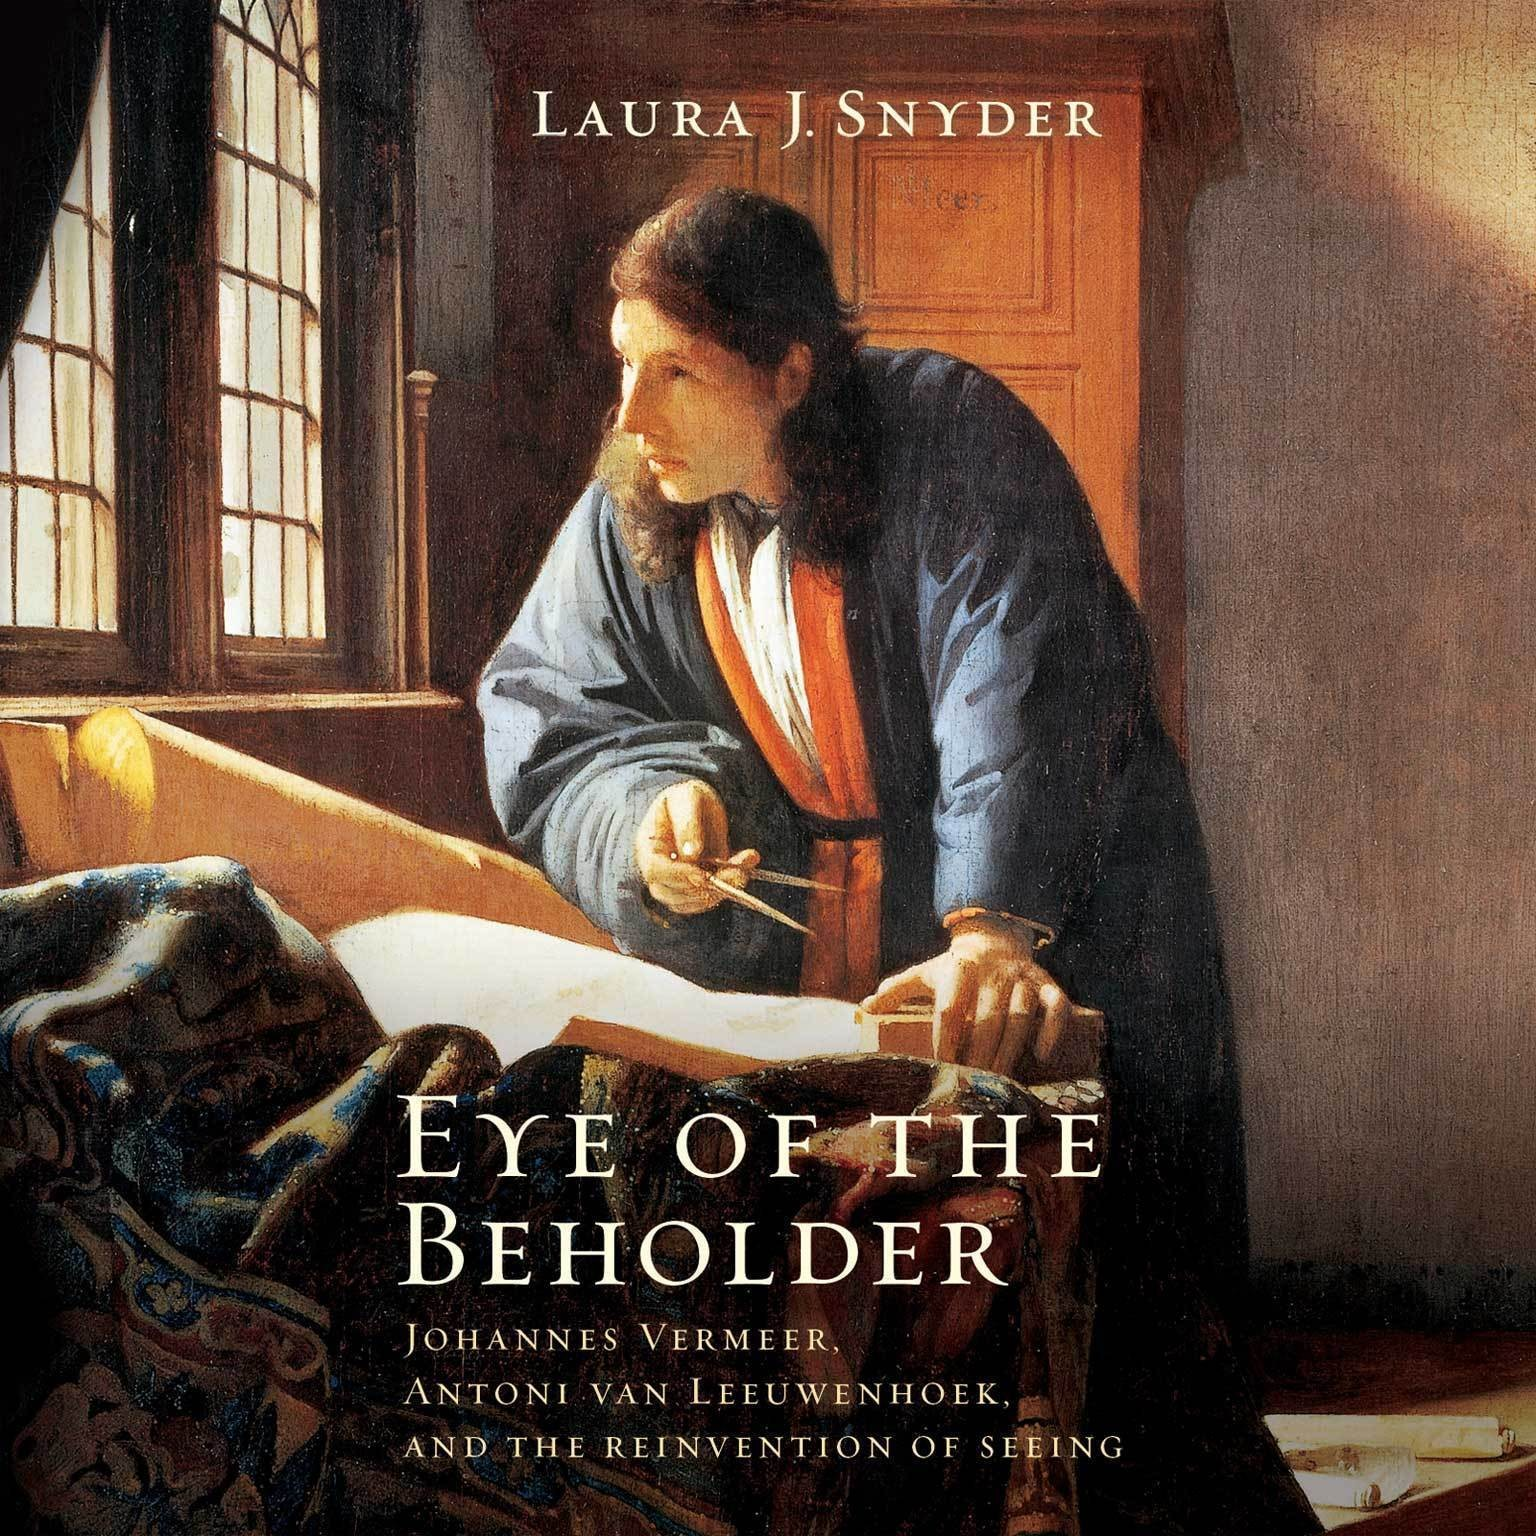 Printable Eye of the Beholder: Johannes Vermeer, Antoni van Leeuwenhoek, and the Reinvention of Seeing Audiobook Cover Art